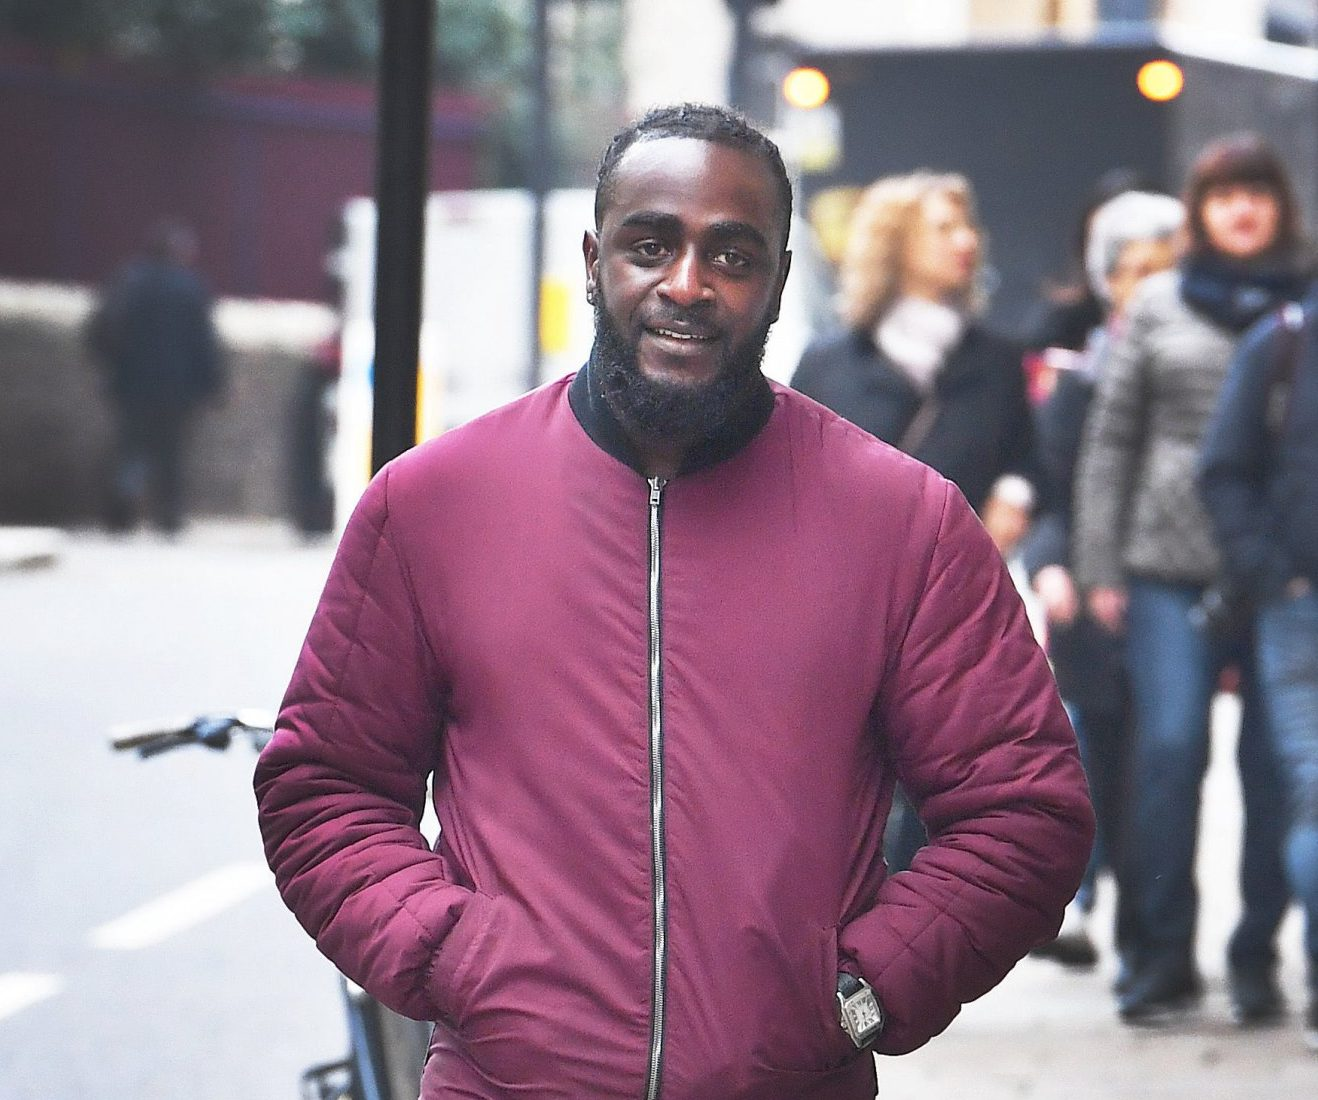 Festus Onasanya, the 33-year-old brother of Labour MP Fiona Onasanya, arrives at the Old Bailey for a plea hearing over allegations of a motoring offence. PRESS ASSOCIATION Photo. Picture date: Monday November 5, 2018. Mr Onasanya, the 33-year-old brother of Labour MP Fiona Onasanya, are both alleged to have misinformed Cambridge police about who was responsible for driving a speeding vehicle on July 24 2017. See PA story COURTS Onasanya. Photo credit should read: John Stillwell/PA Wire